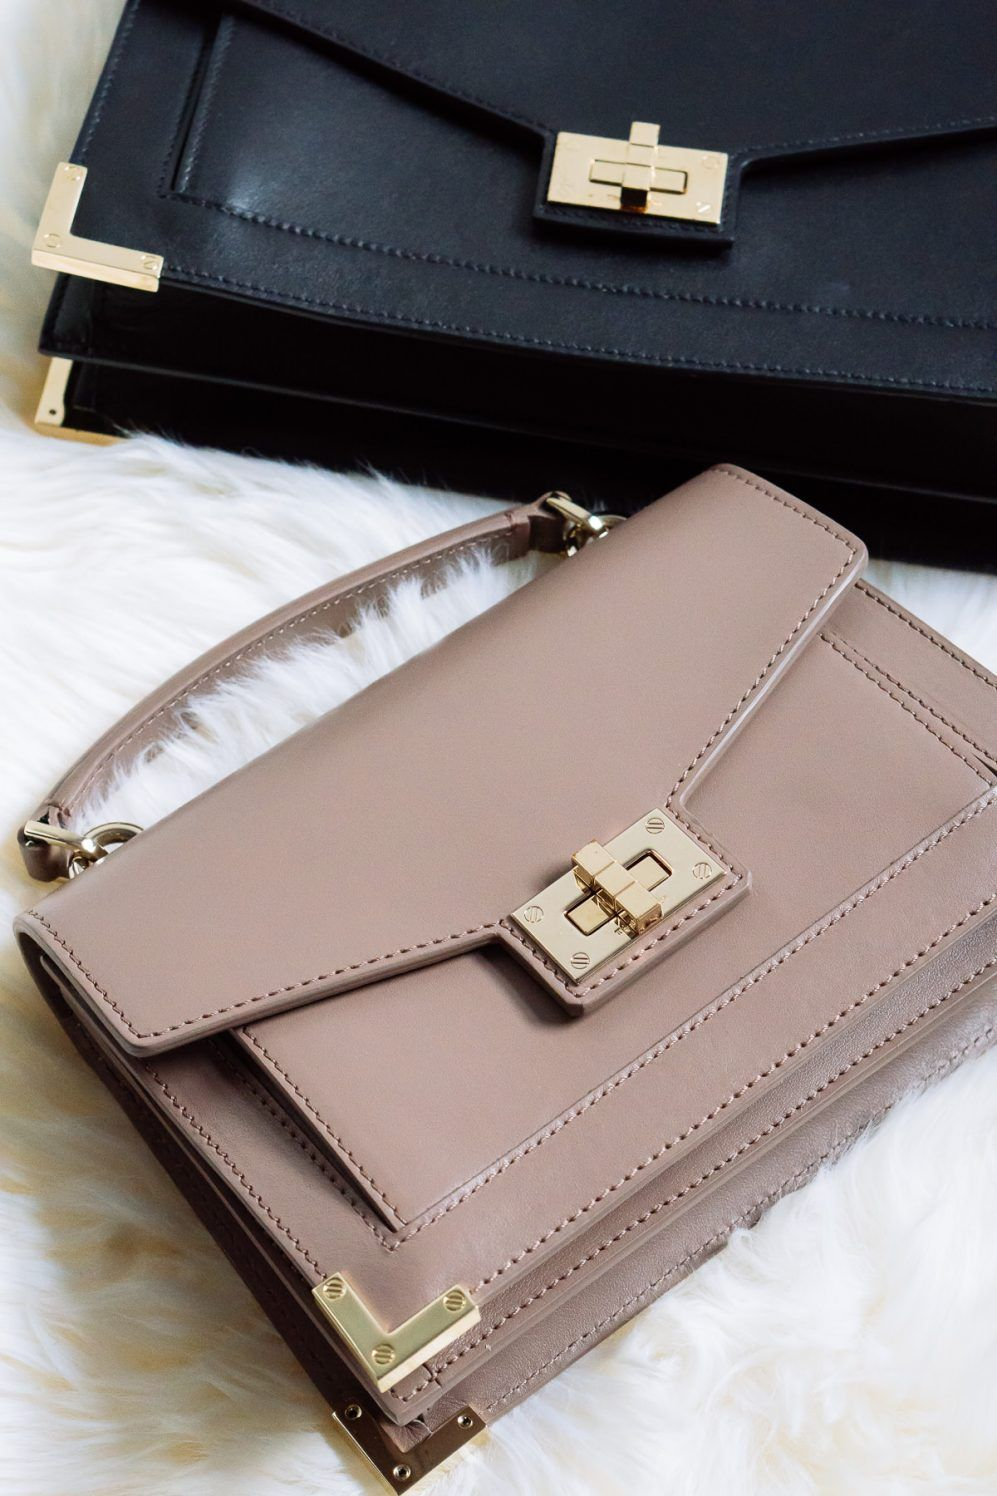 eb1f77fc41 Introducing  The Emily Bag By The Kooples